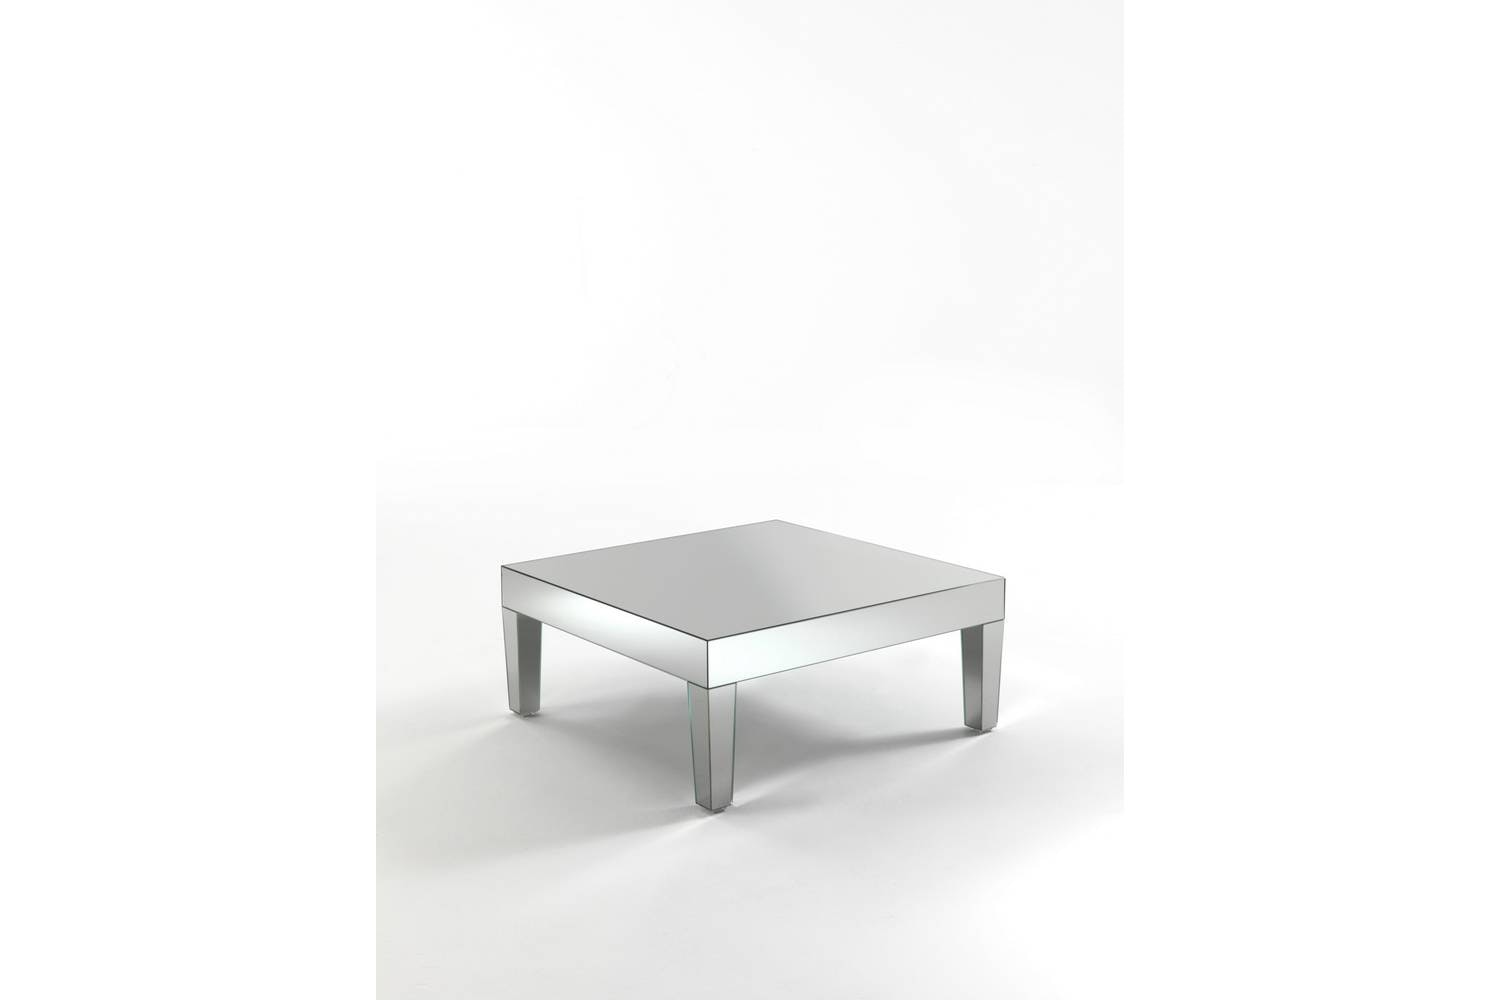 Strass Coffee Table by Opera Design for Porada